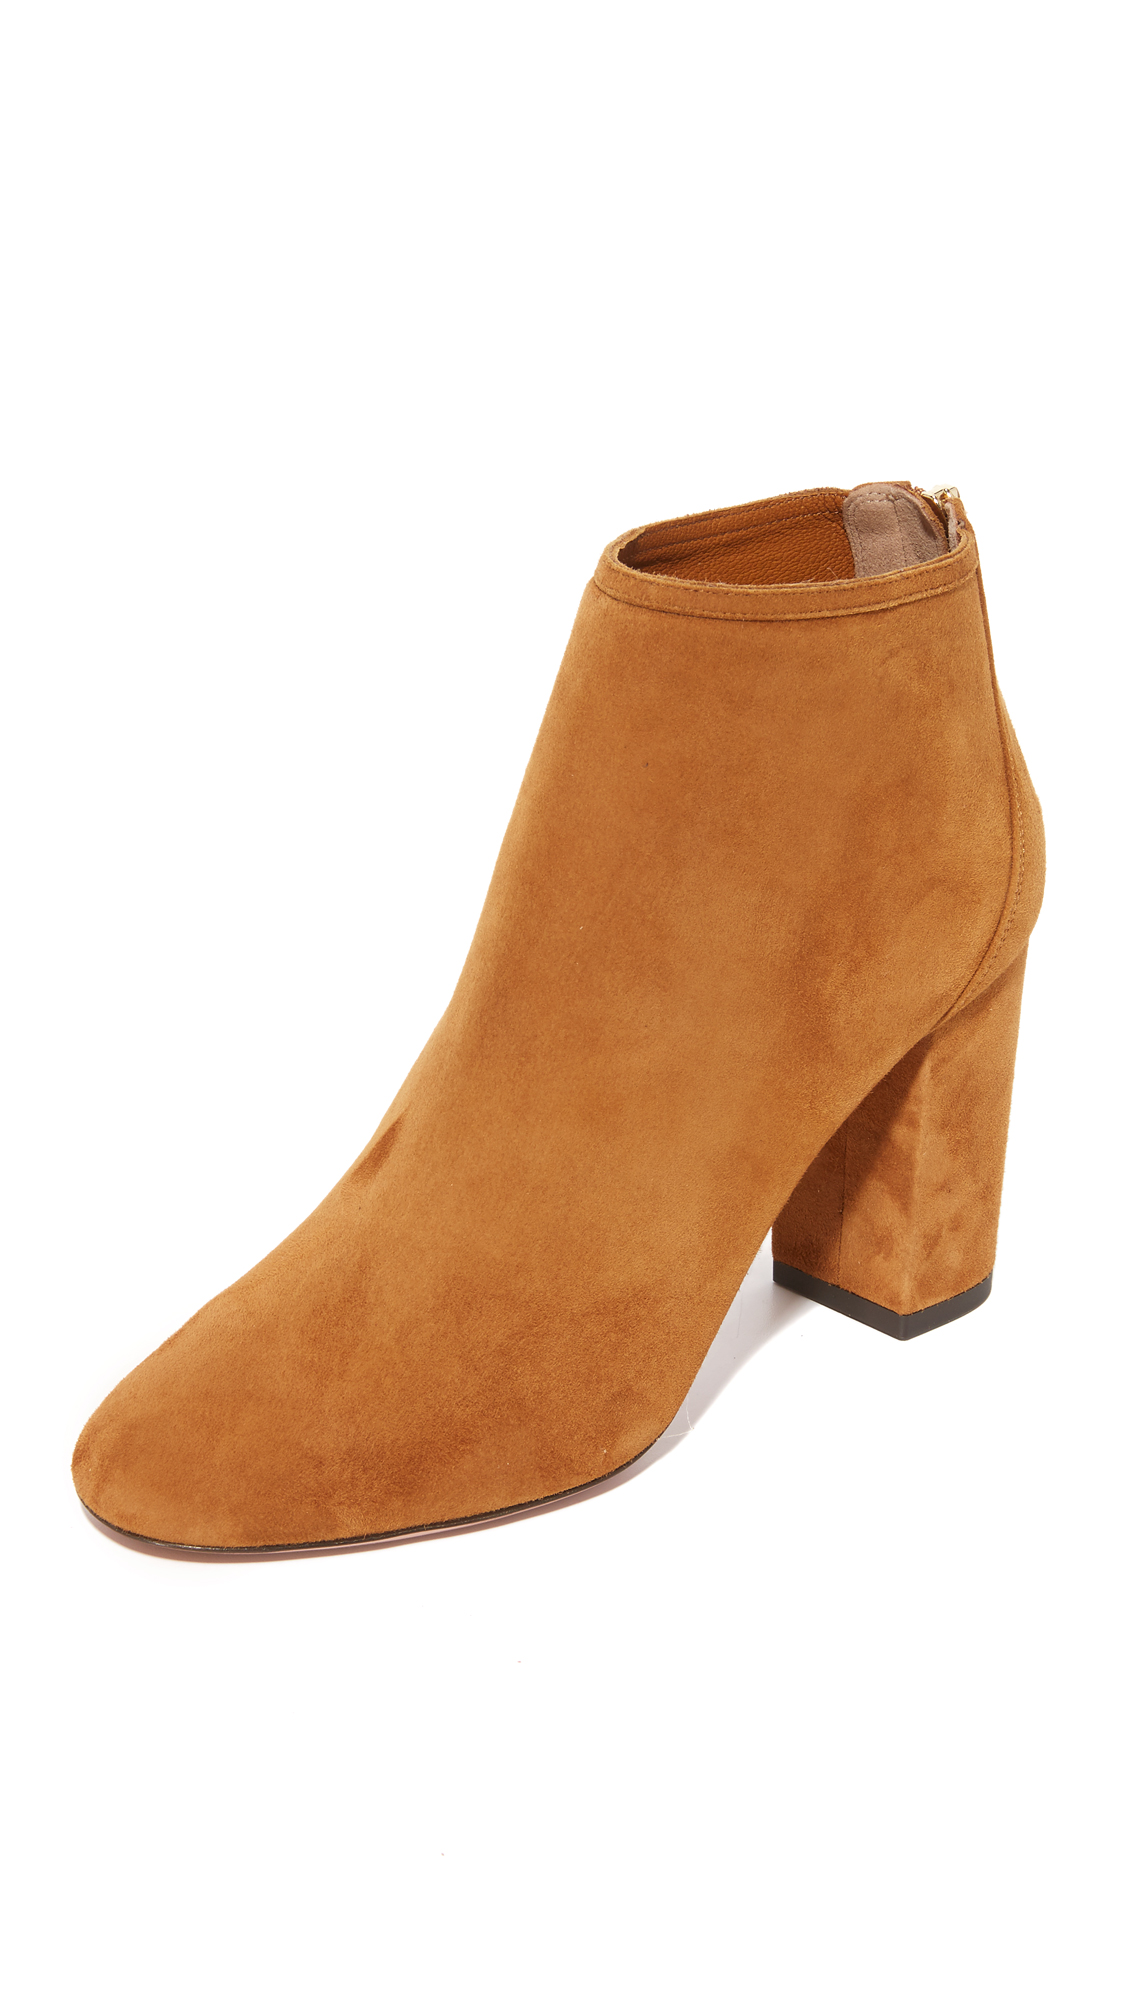 Aquazzura Downtown Booties - Cognac